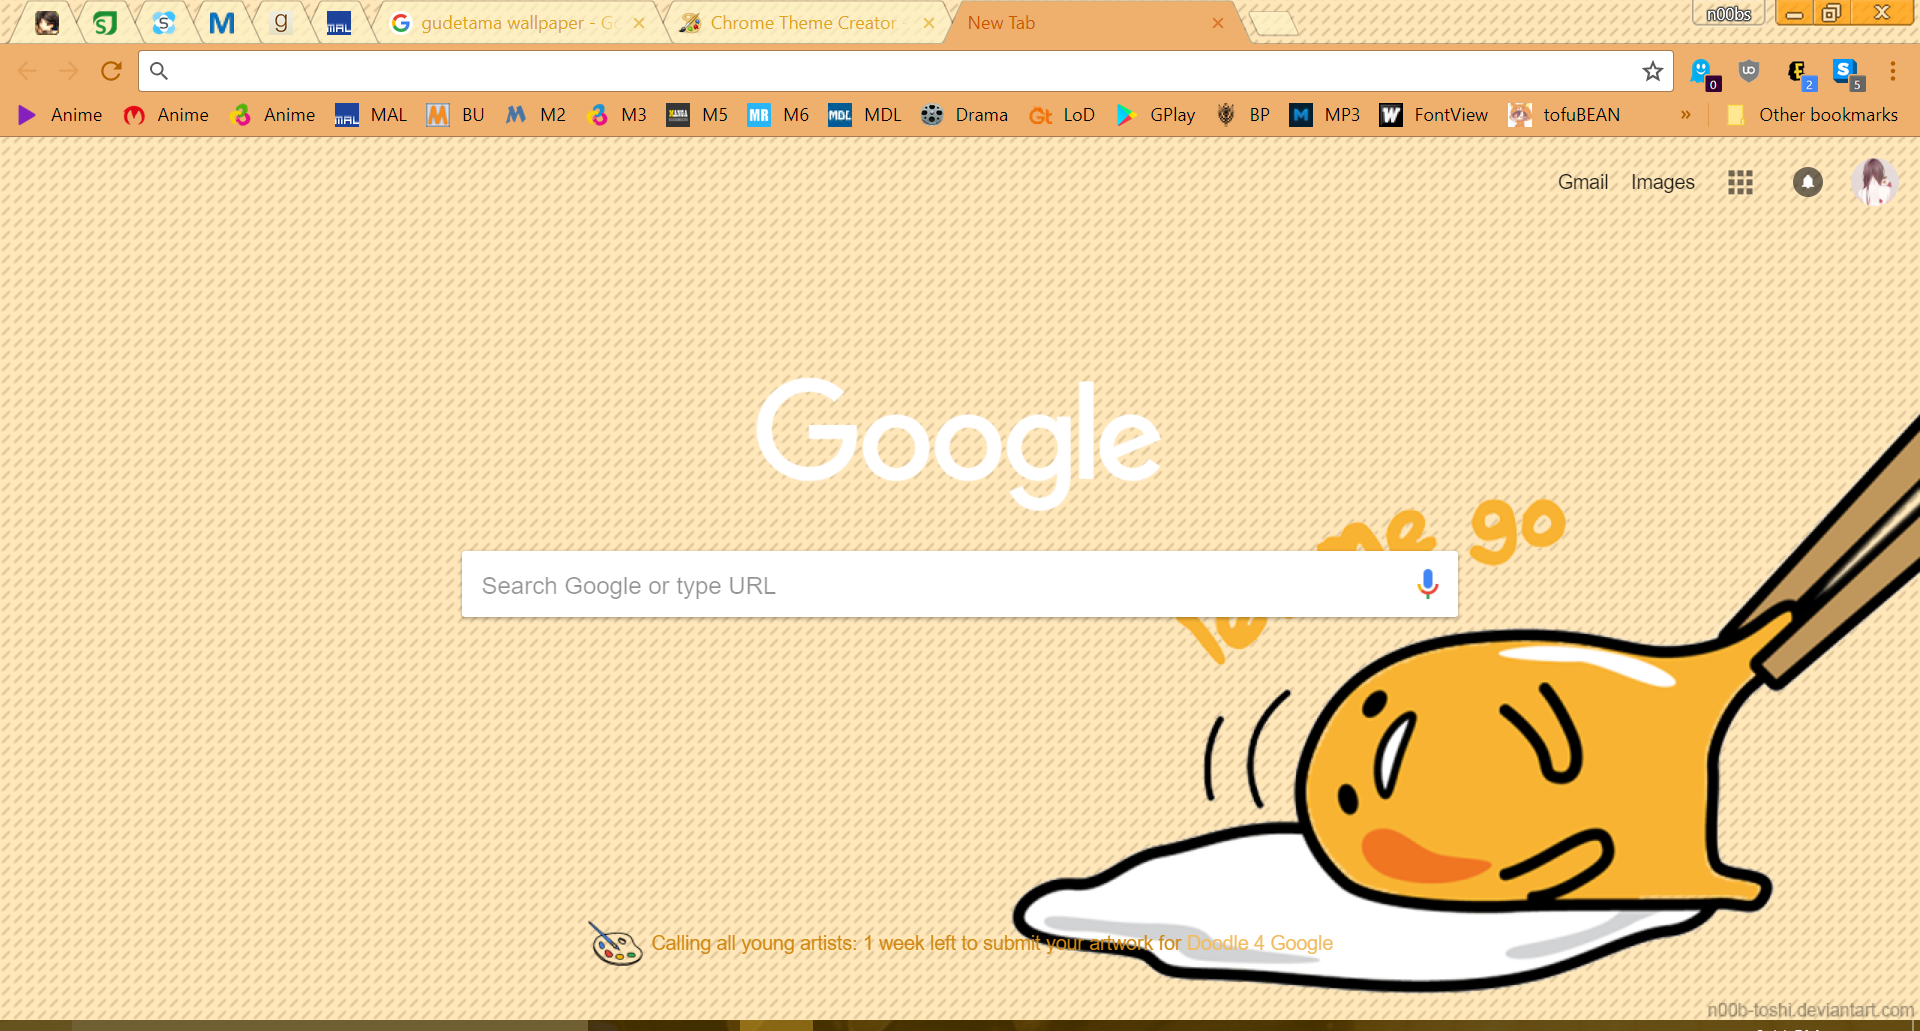 Gudetama Chrome Theme By N00b Toshi